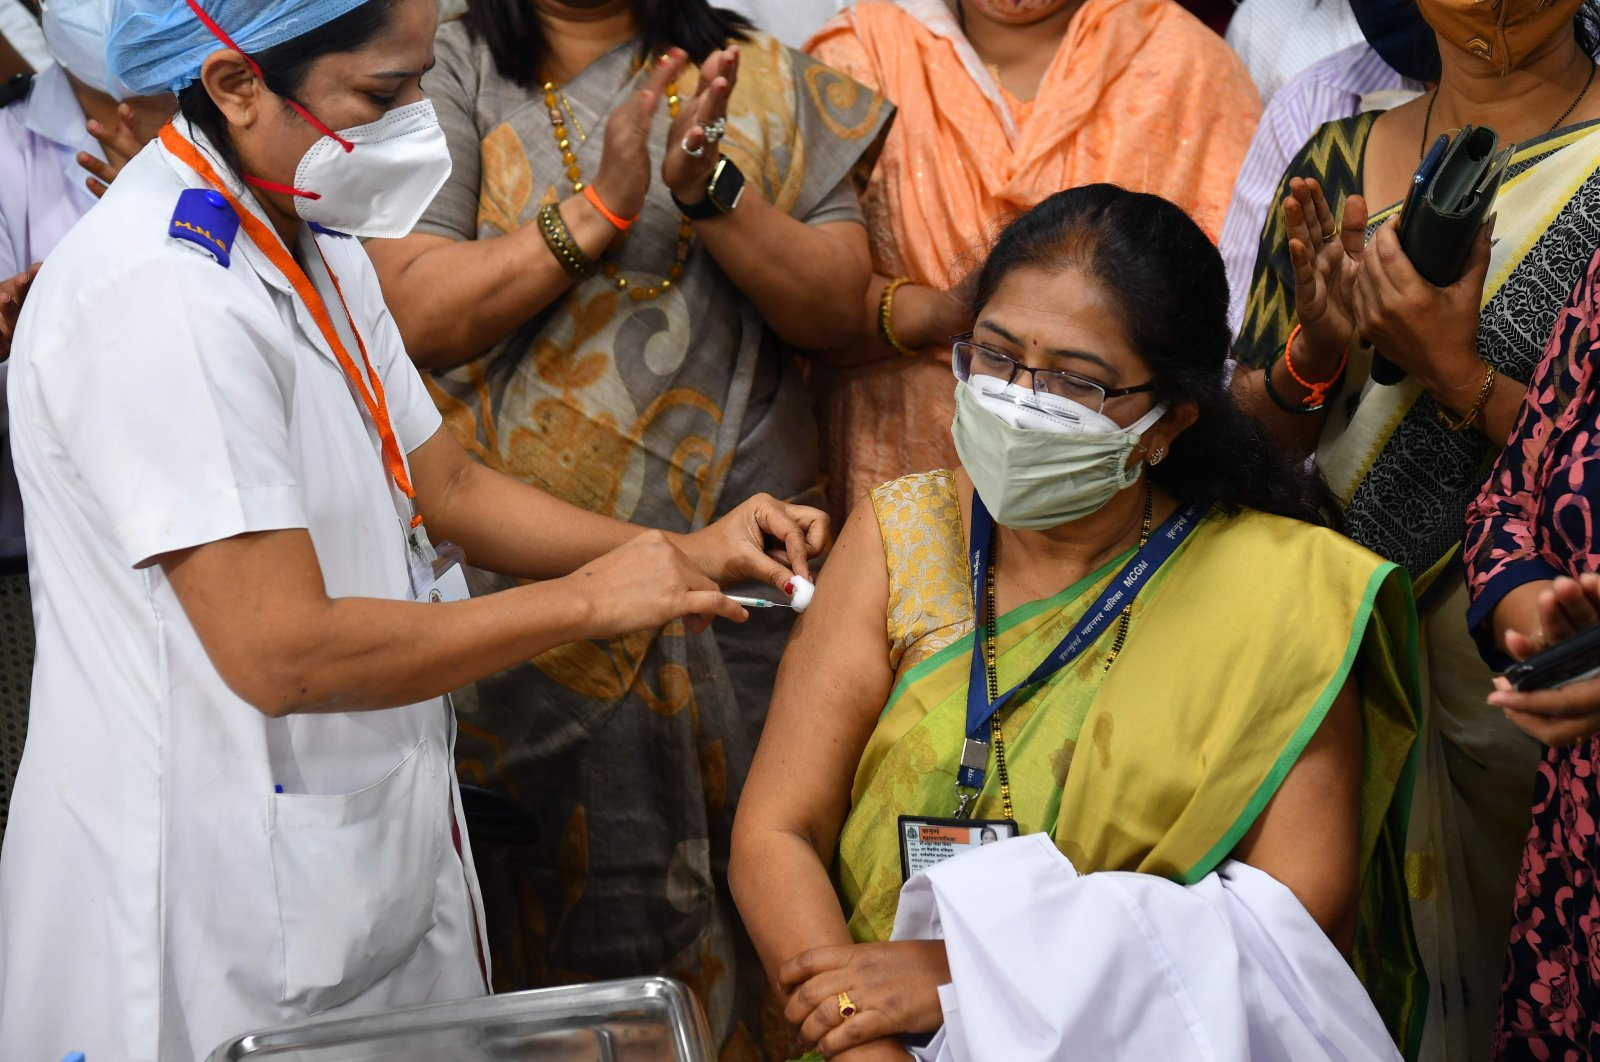 A medical worker inoculates a woman with a COVID-19 vaccine at a hospital in Mumbai, India, Jan. 16, 2021. (AFP Photo)